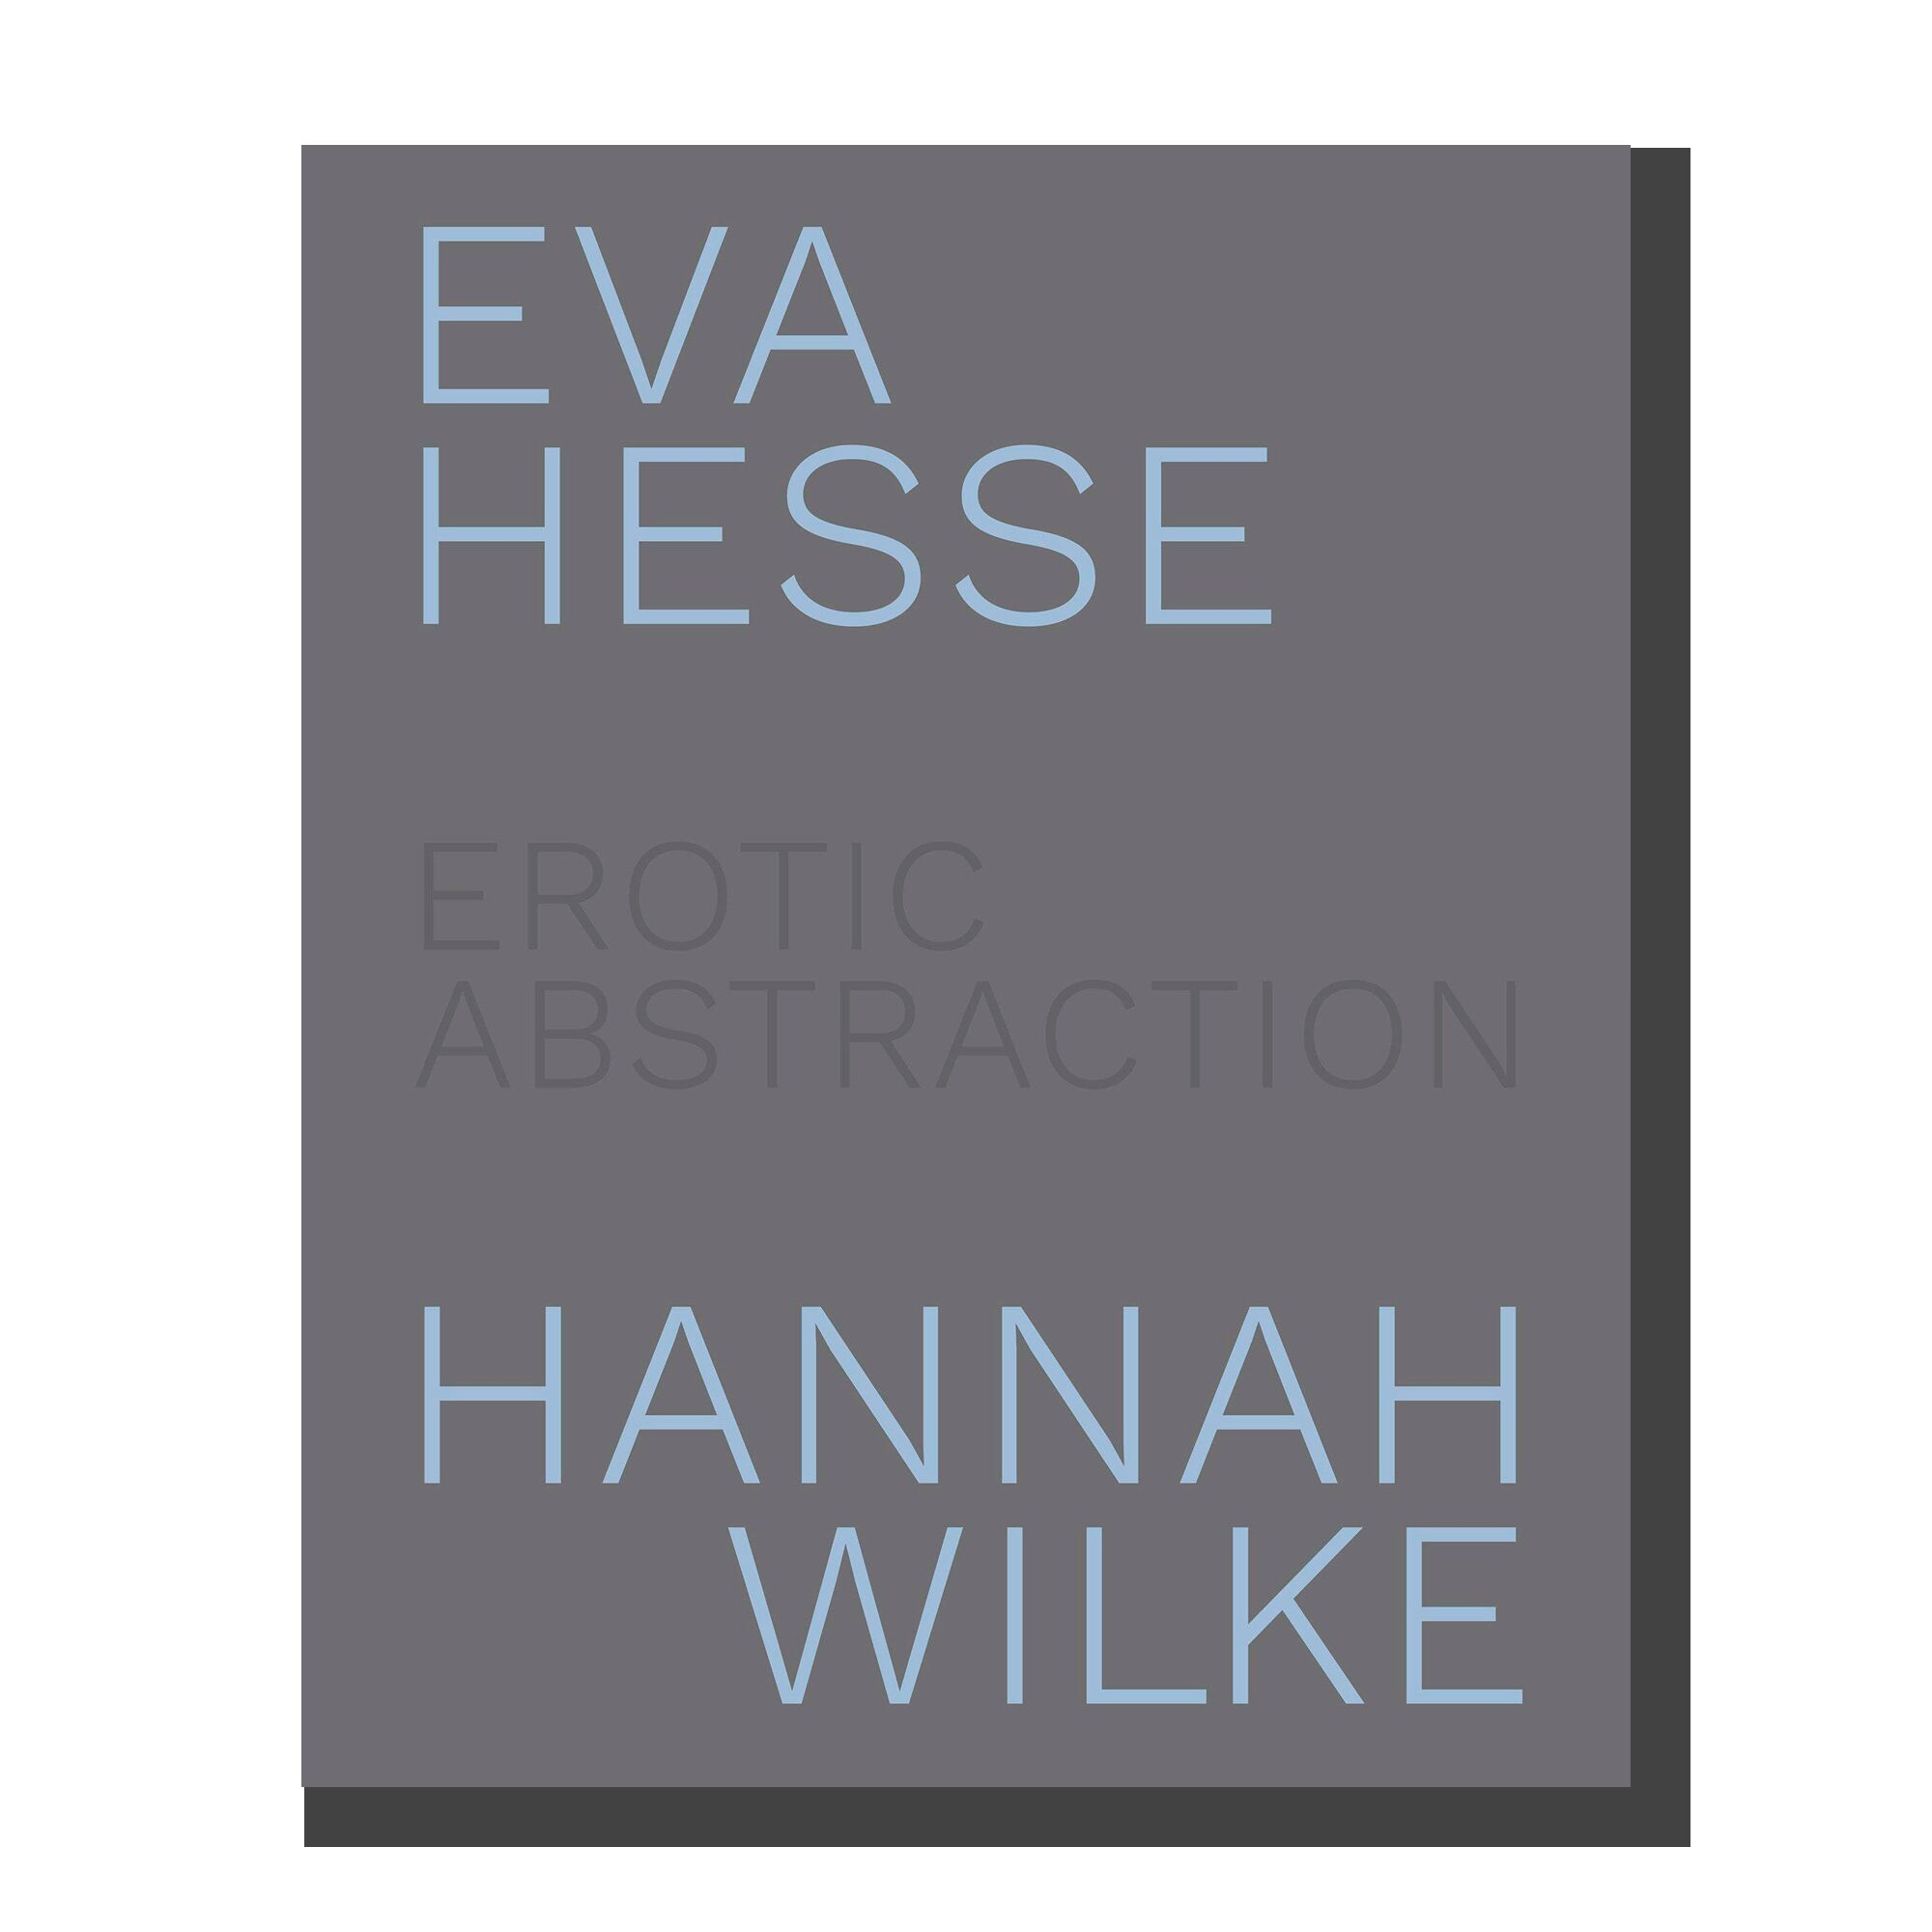 Eva Hesse and Hannah Wilke: Erotic Abstraction